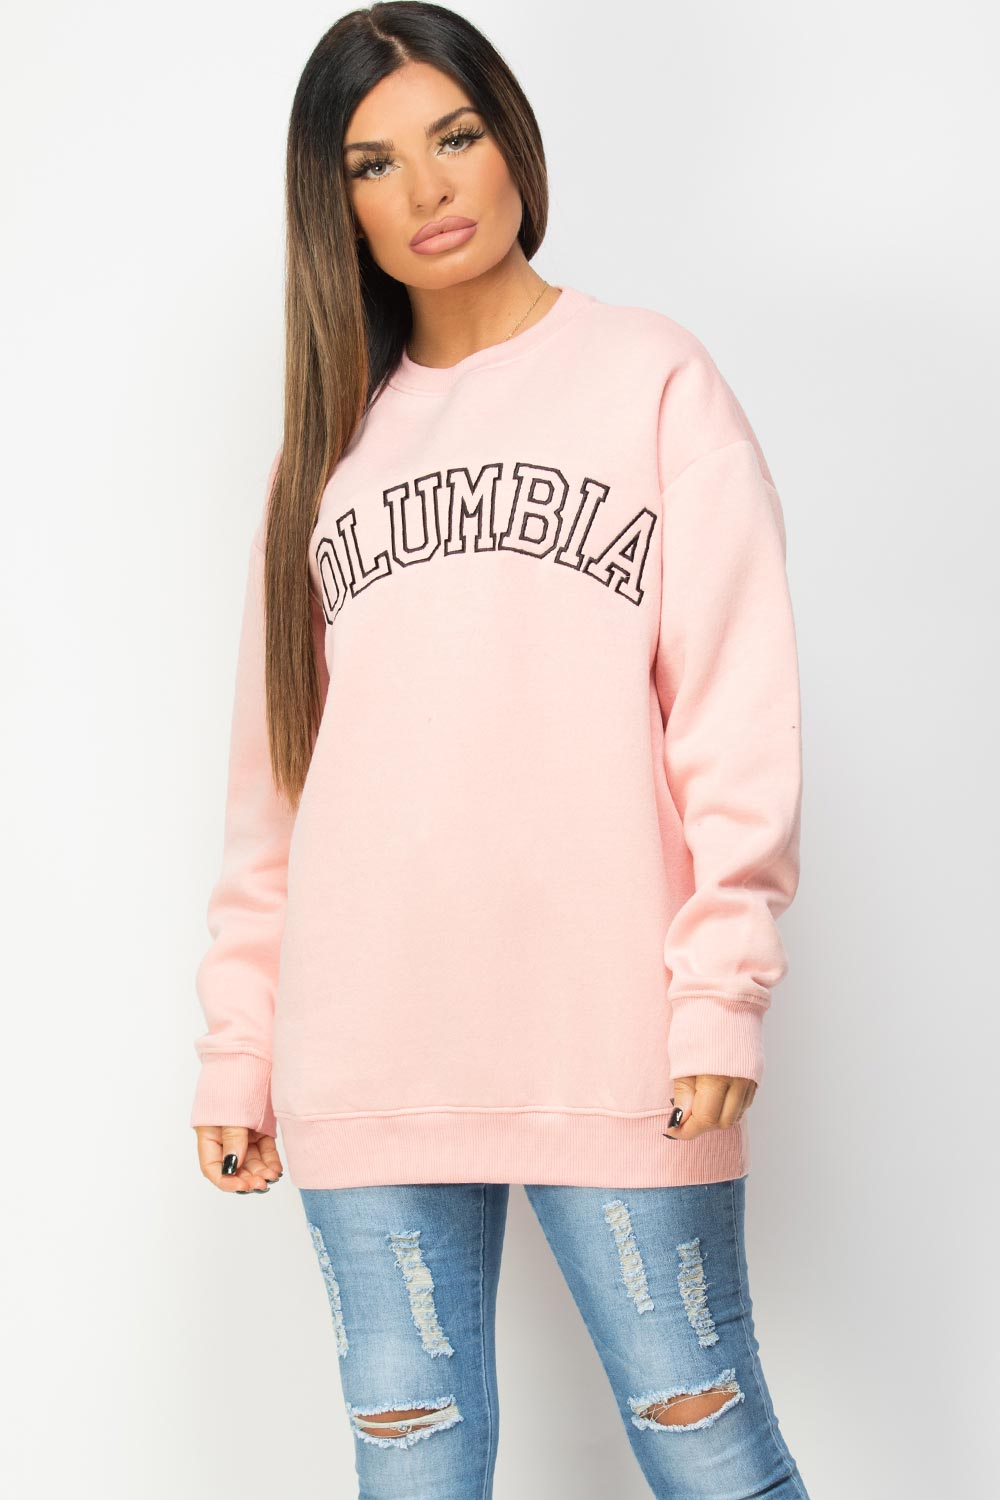 pink sweatshirt with cloumbia embroidery